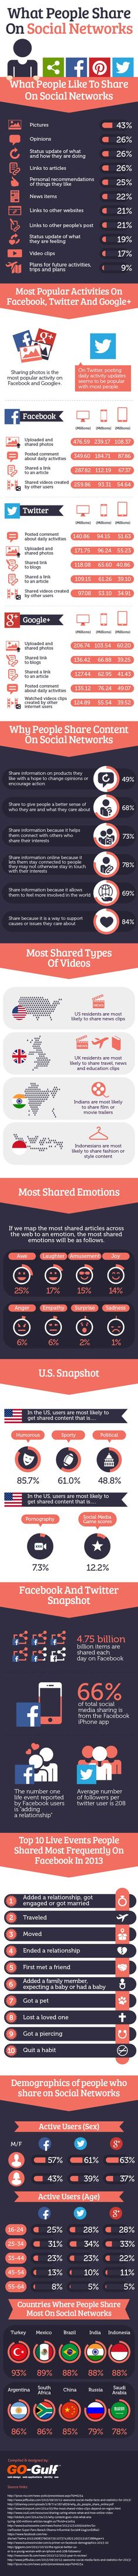 What people share in #socialmedia #infographic